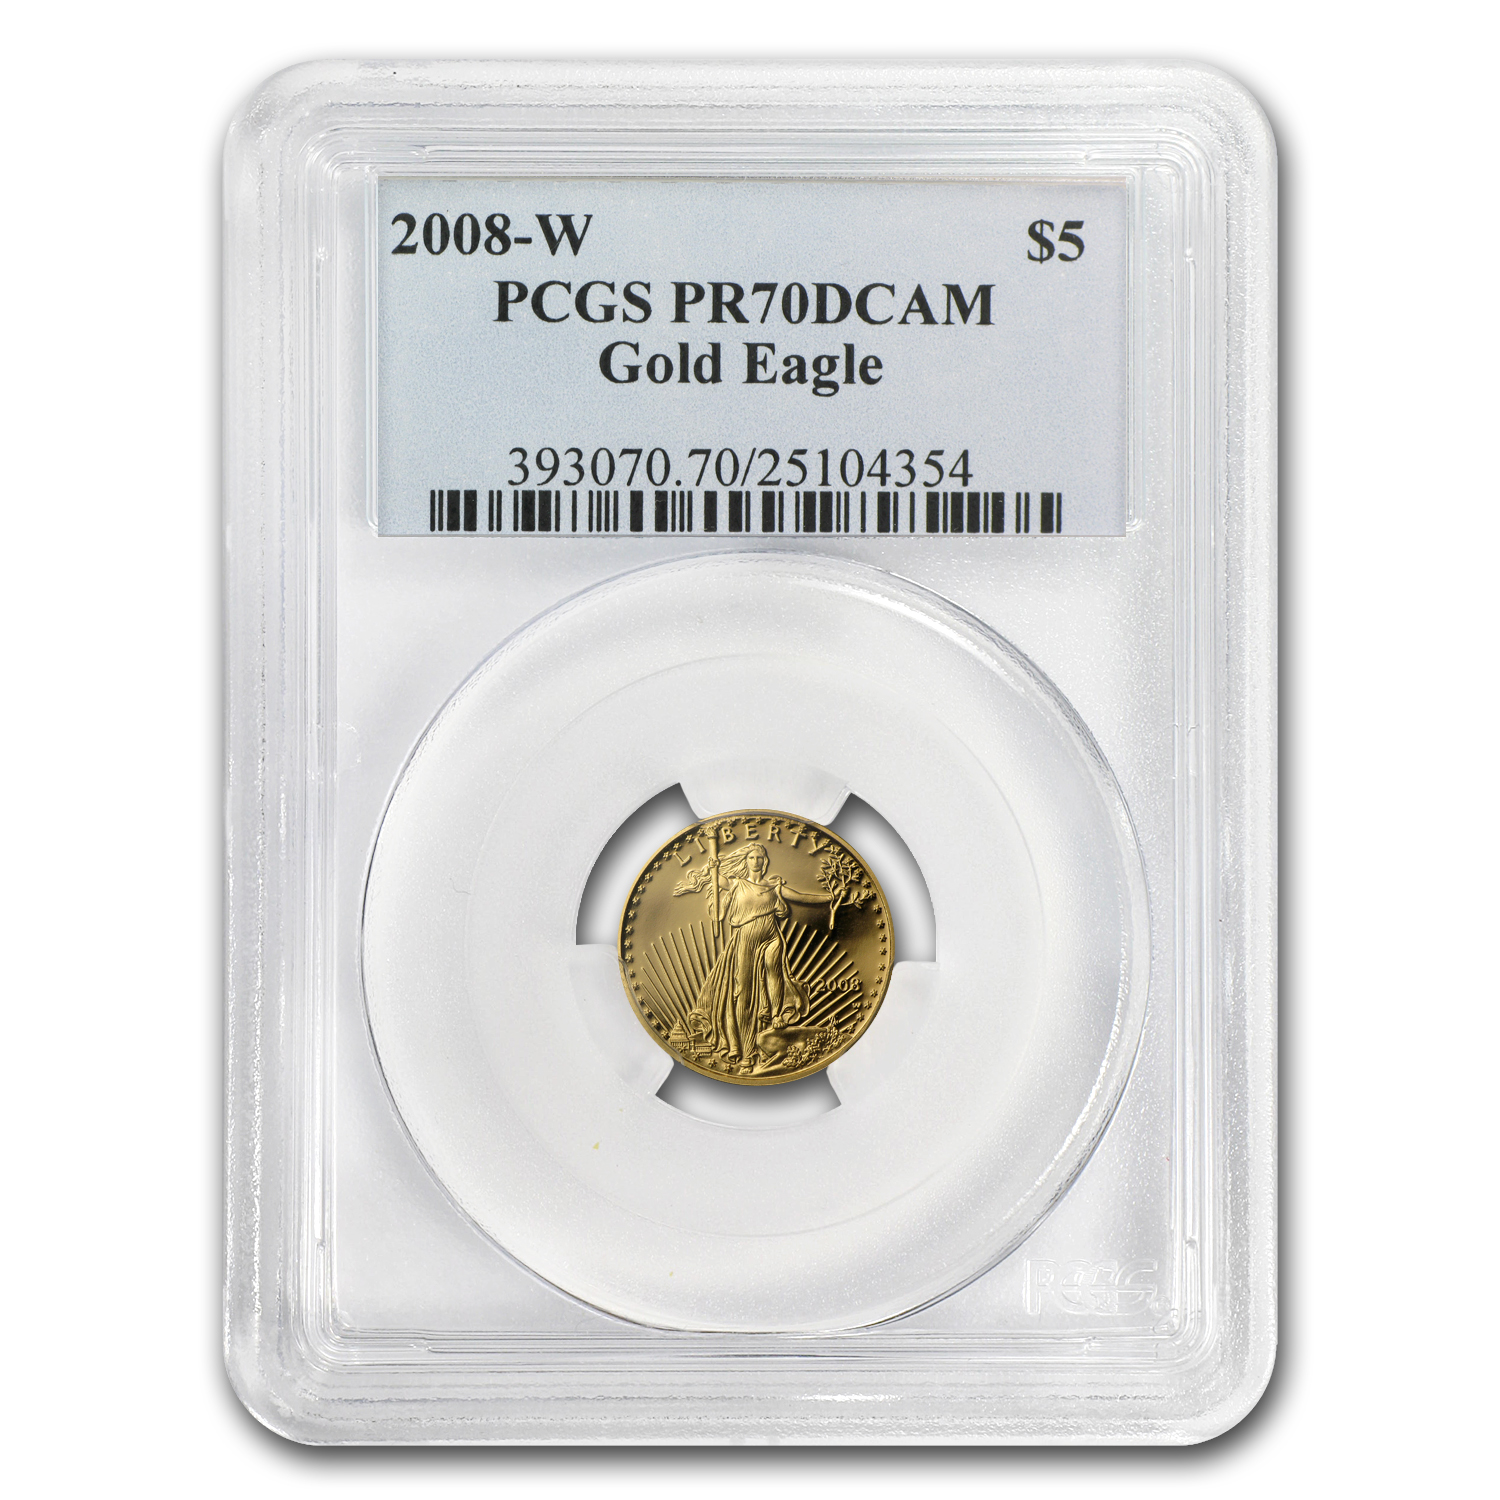 2008-W 1/10 oz Proof Gold American Eagle PR-70 PCGS